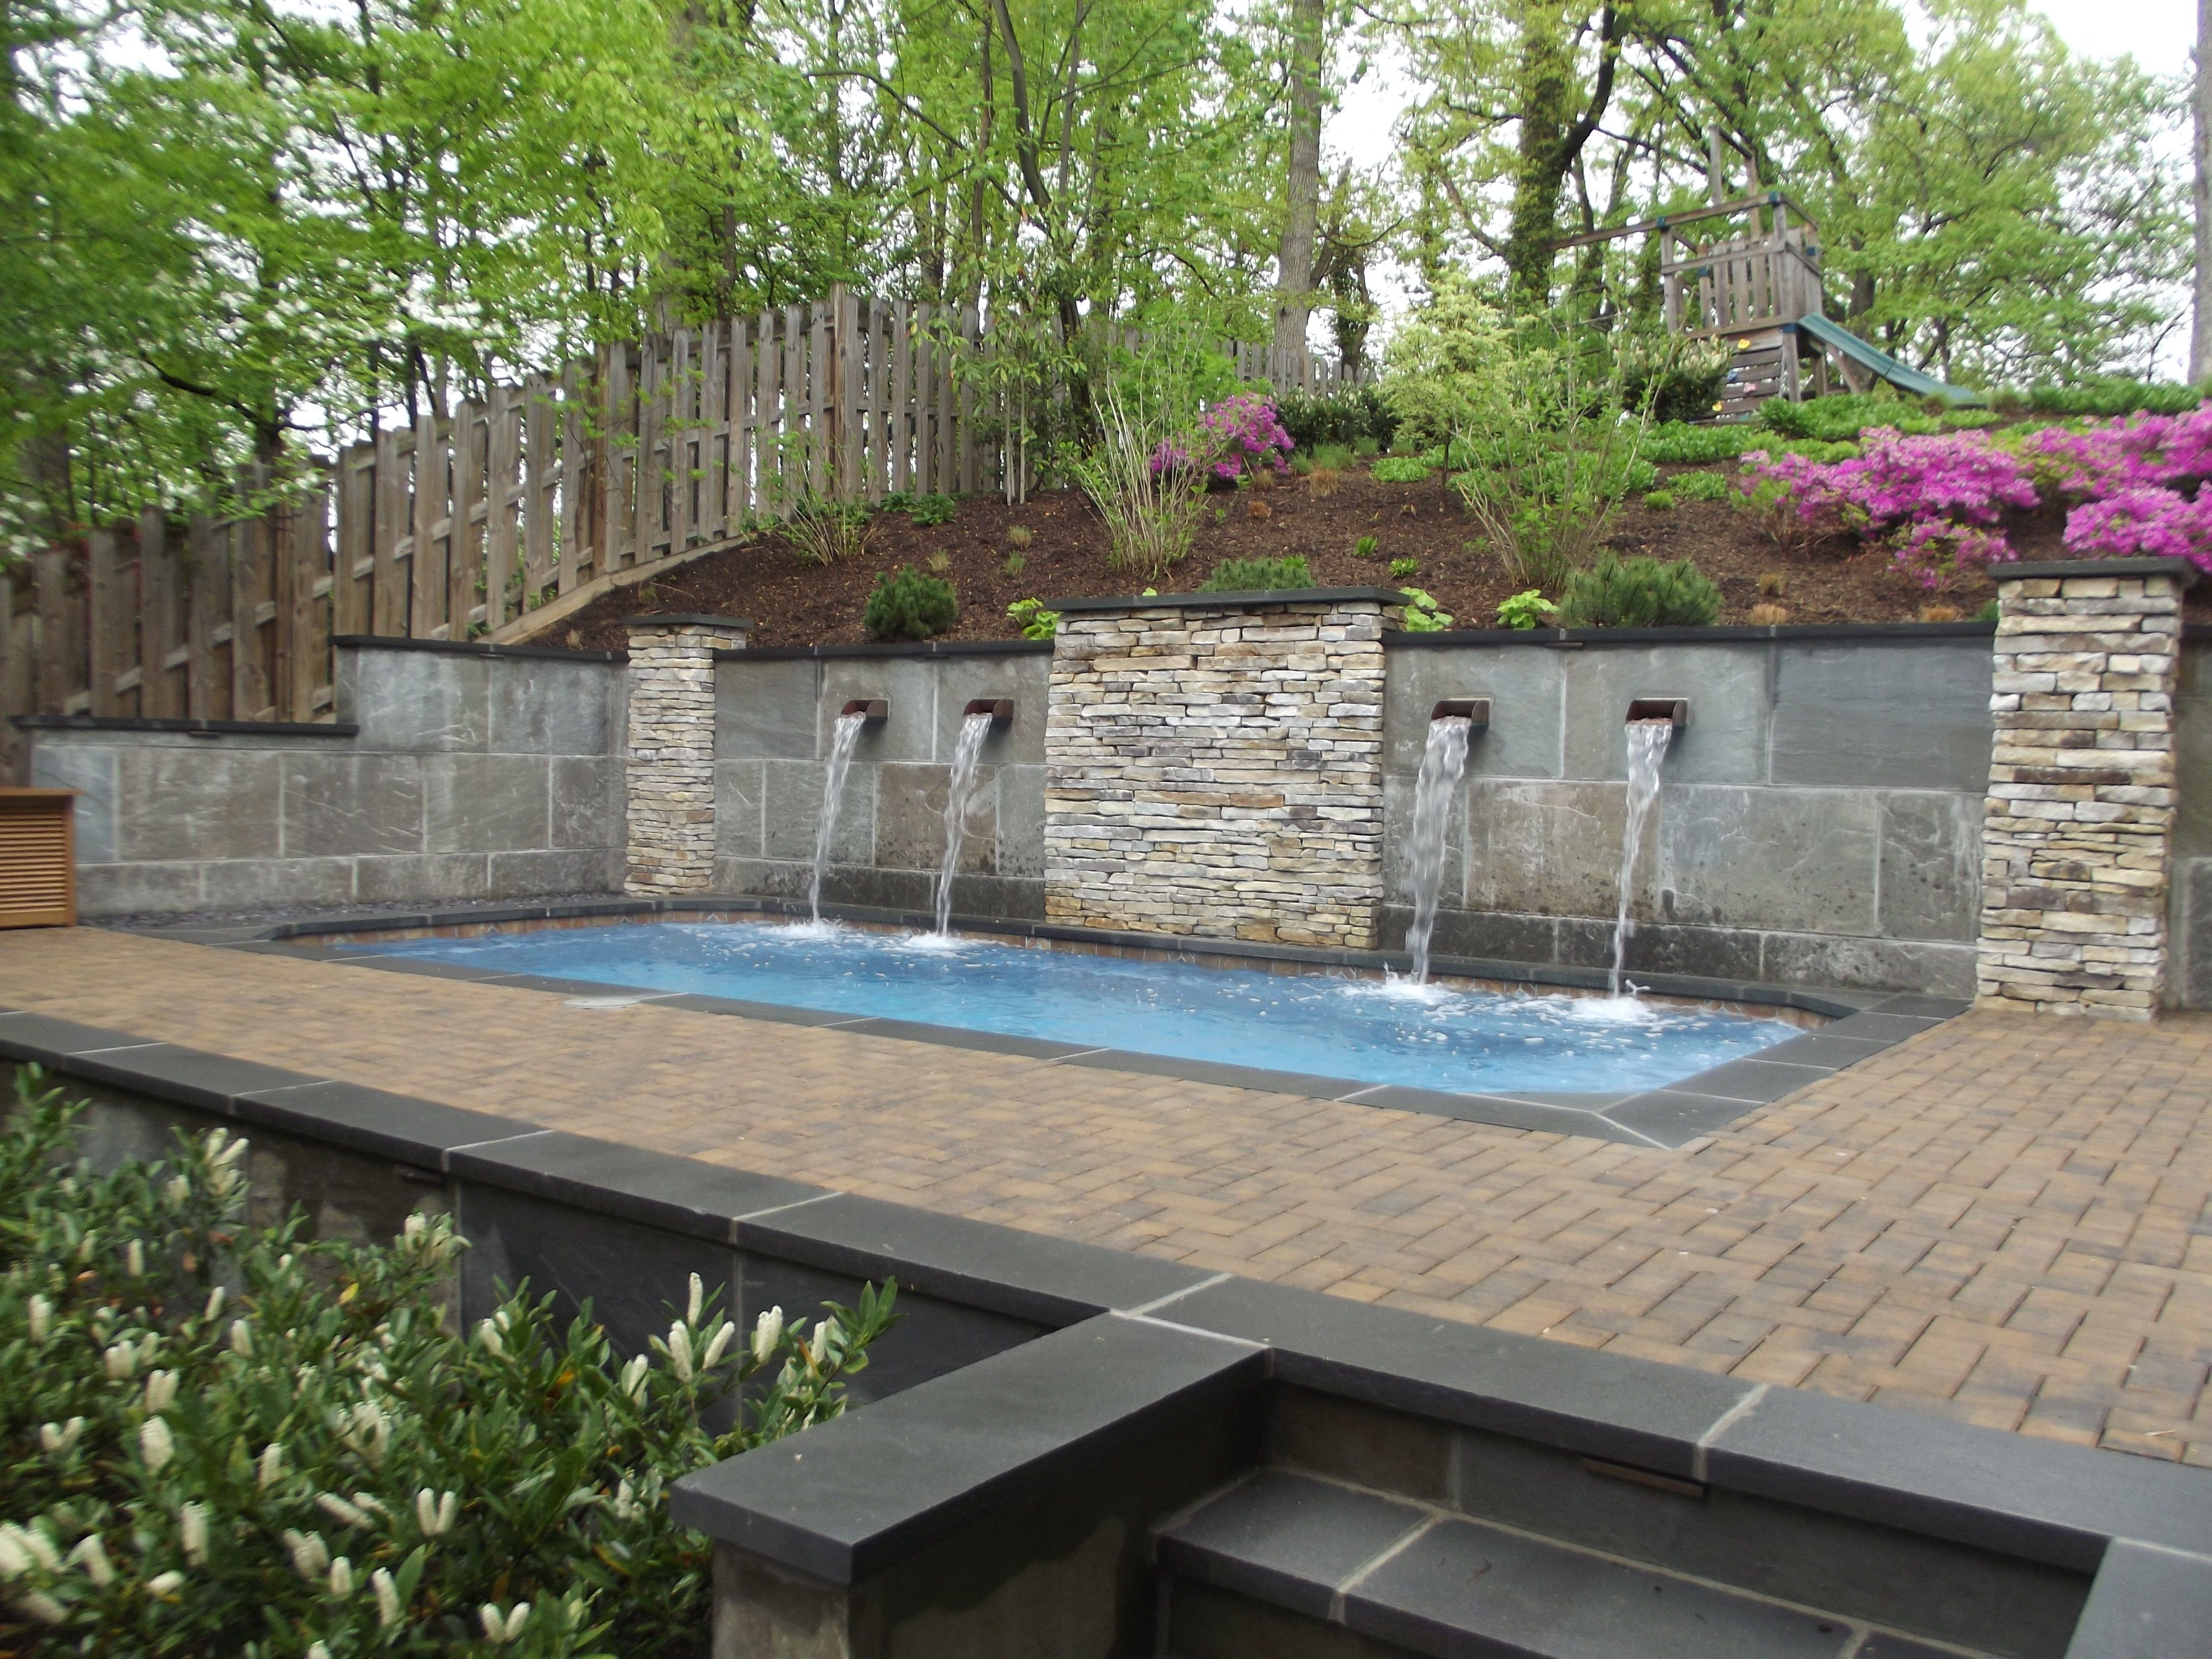 Pool In Sloped Yard Google Search Sloped Backyard Sloped Yard Small Backyard Pools